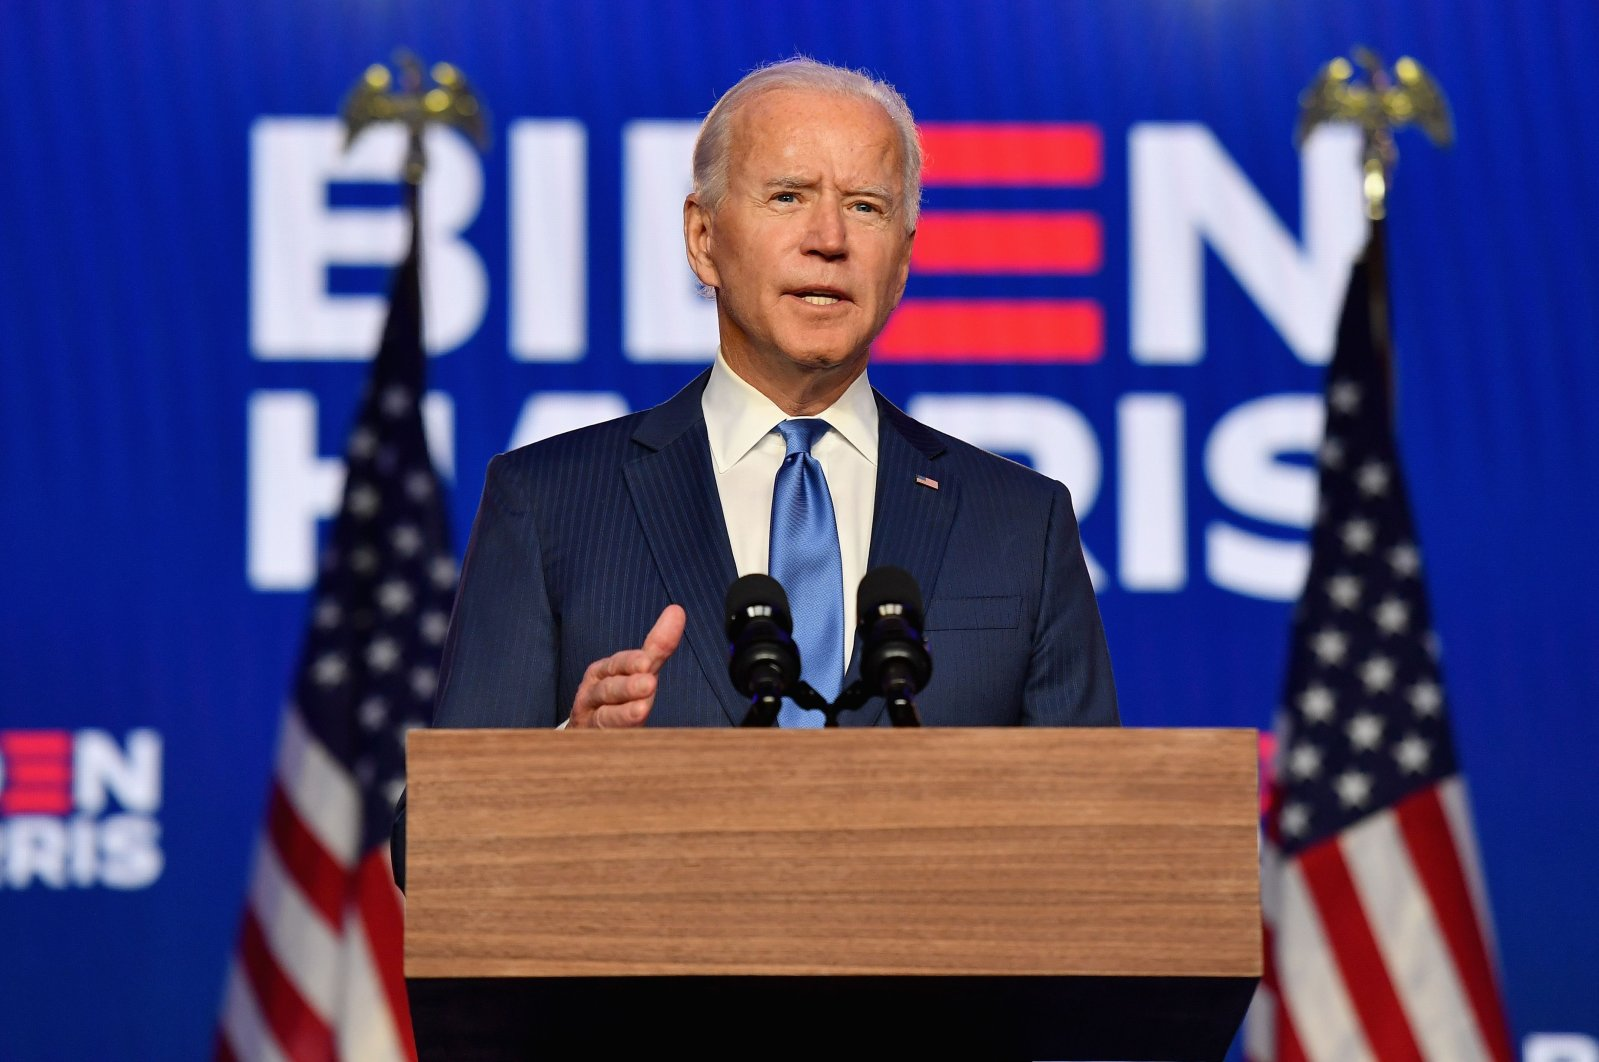 Democratic presidential nominee Joe Biden delivers remarks at the Chase Center in Wilmington, Delaware, on November 6, 2020. (AFP Photo)